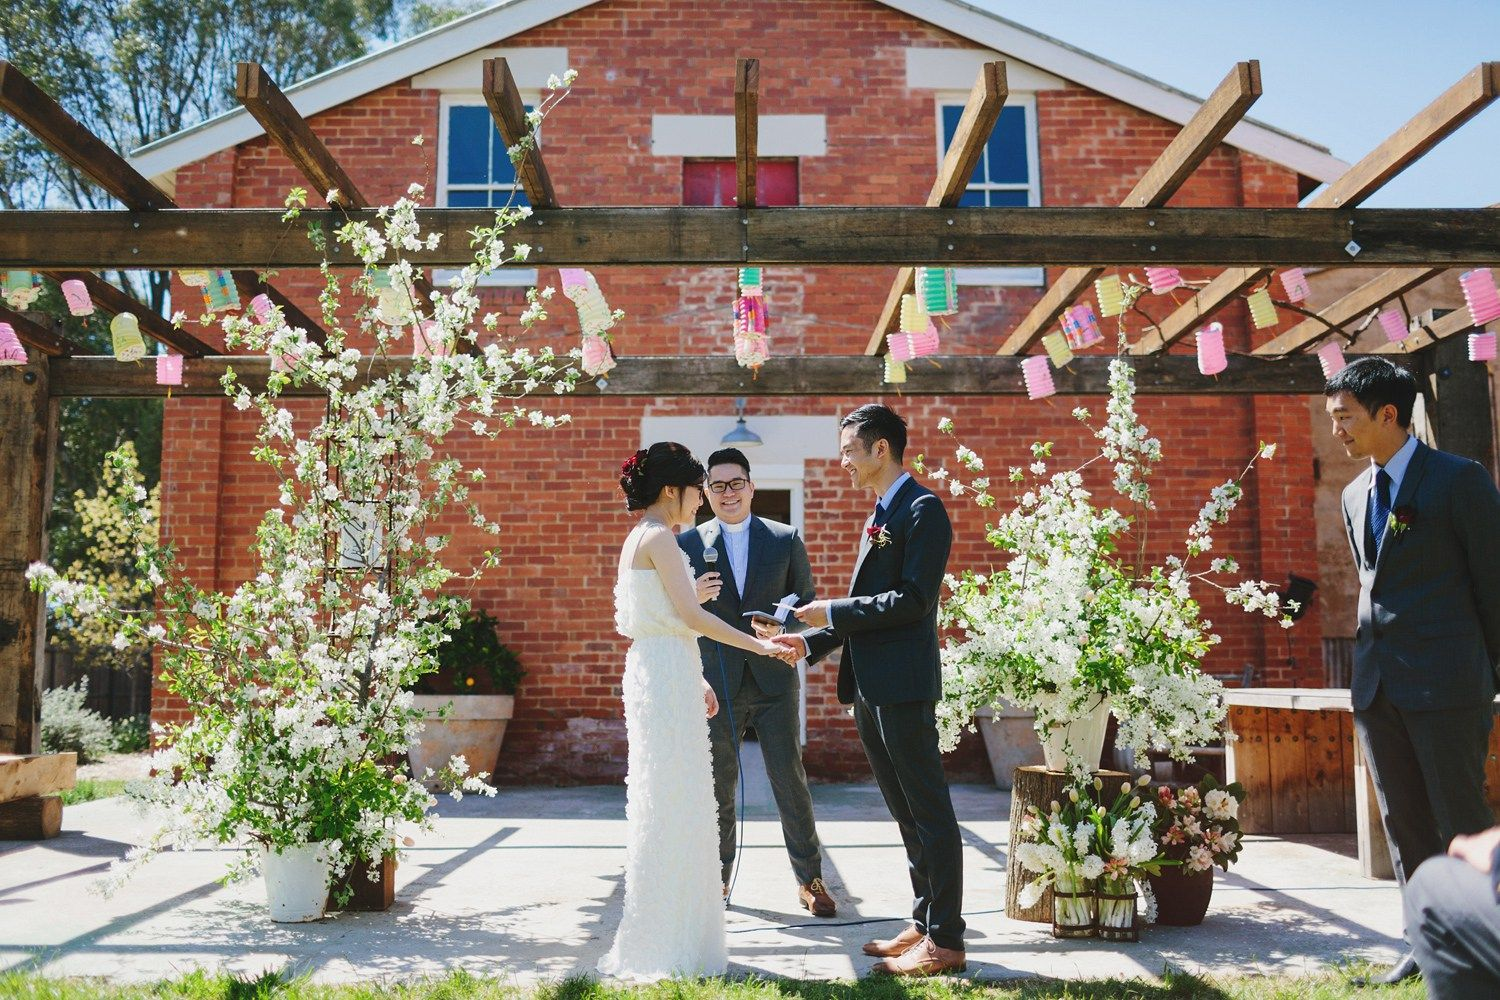 Alice Temperley wedding dress for an Intimate and relaxed country wedding at Old Butter Factory